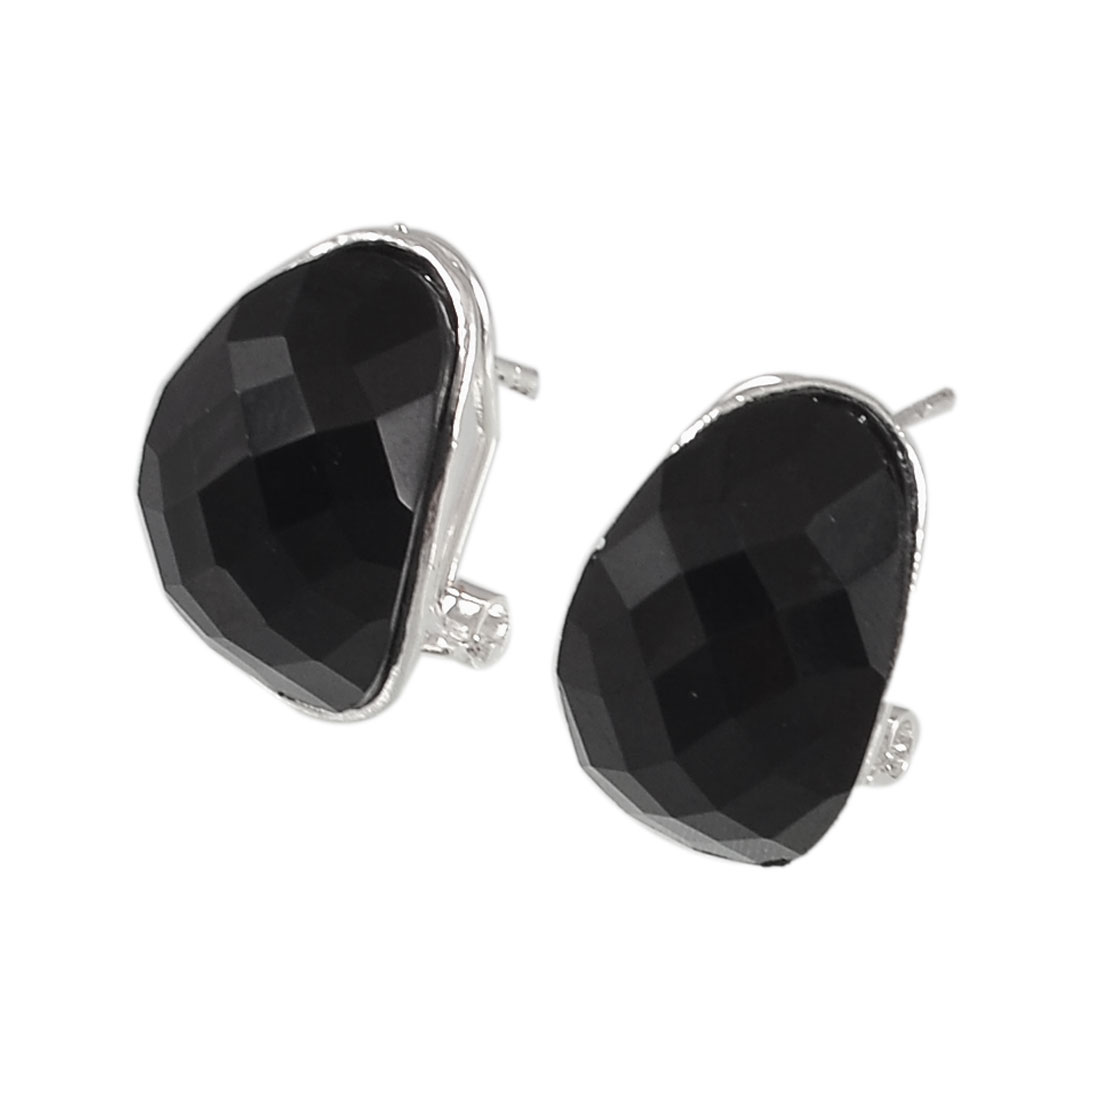 Lady Black Faceted Crystal Decor Oval Shaped Eardrop Stud Earrings Pair